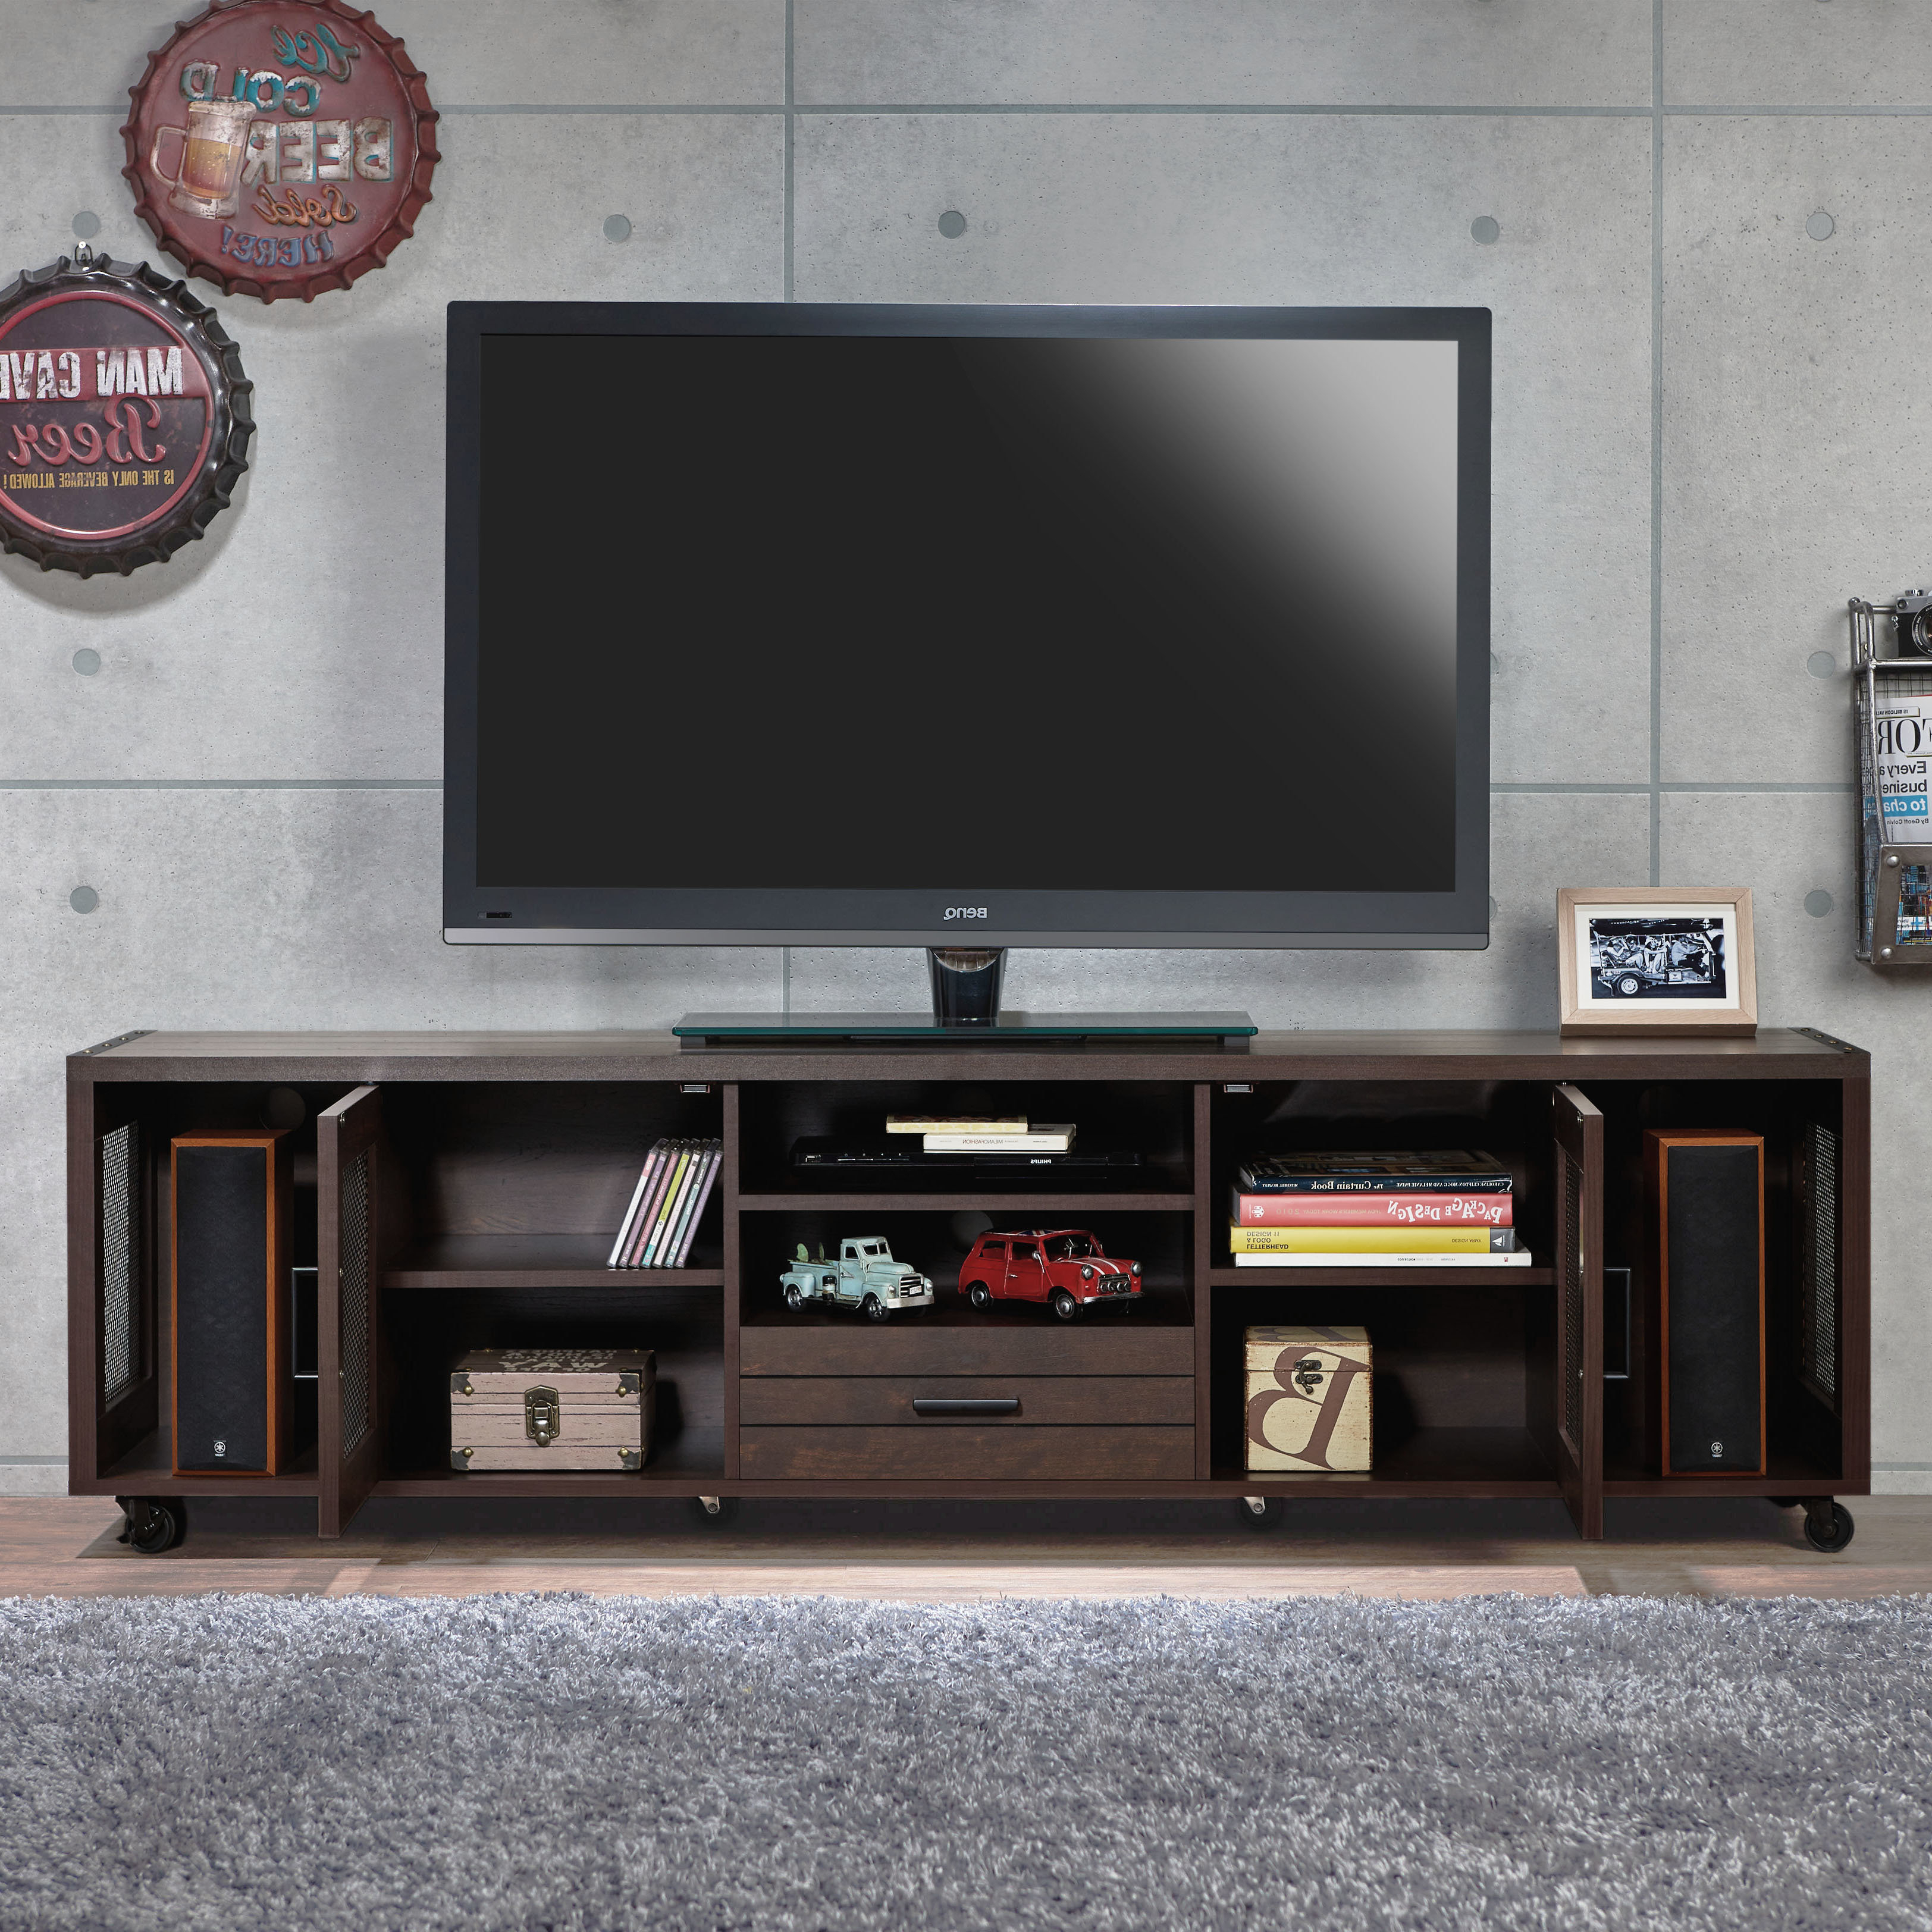 Fashionable Wayfair Tv Stands 55 Inch Corner On Sale 60 Stand With Fireplace Throughout Wayfair Corner Tv Stands (View 4 of 20)